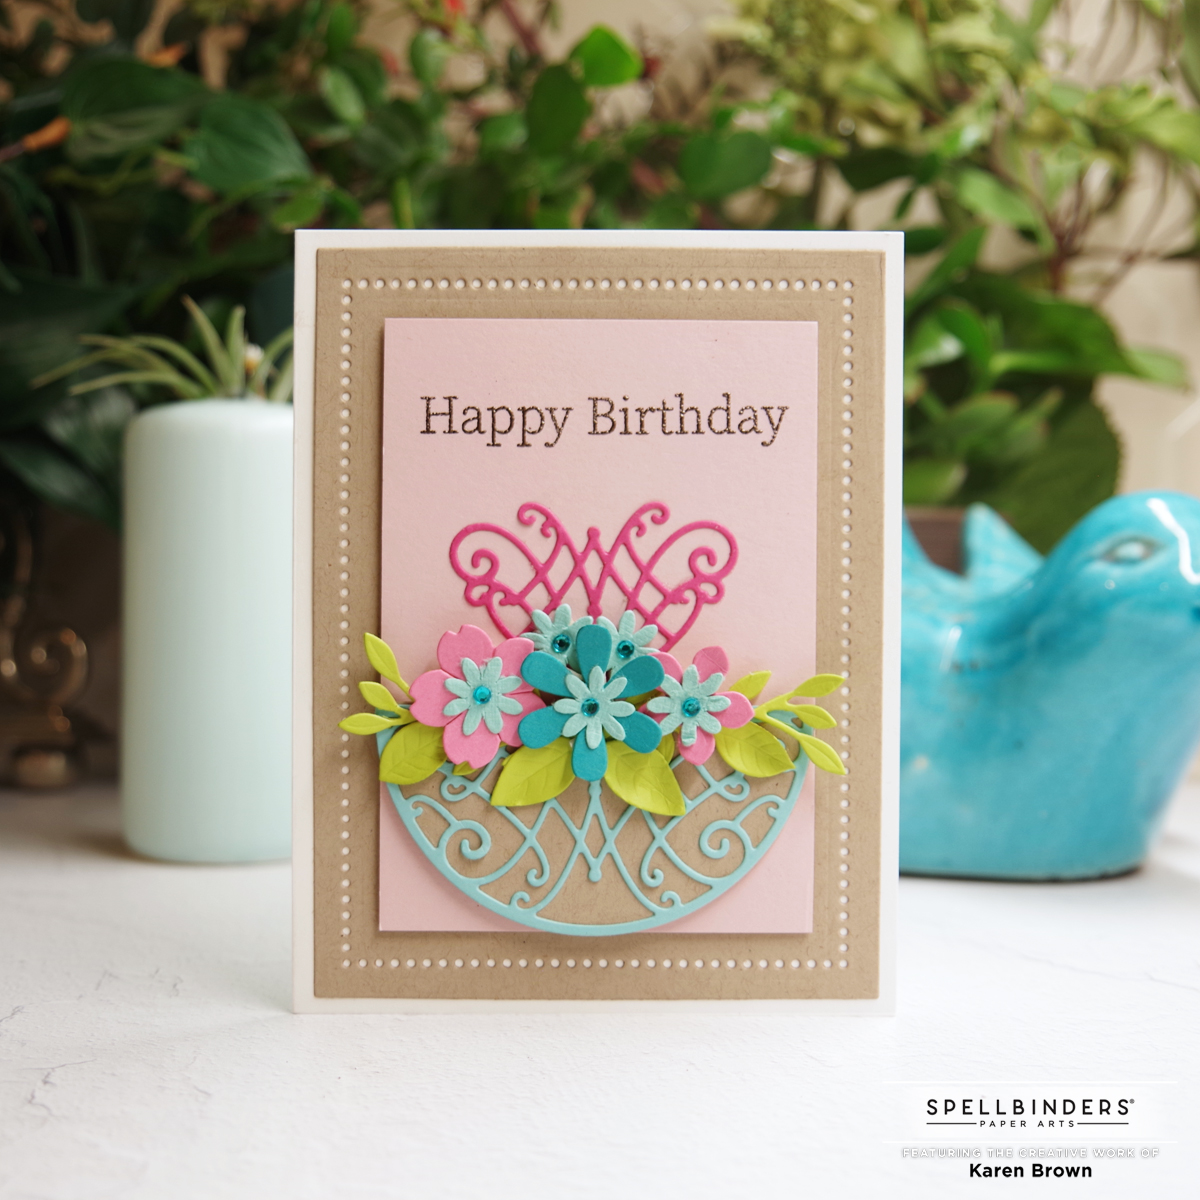 Spellbinder's August 2021 Amazing Paper Grace Die of the Month Card in Kraft, Pink and Aqua.